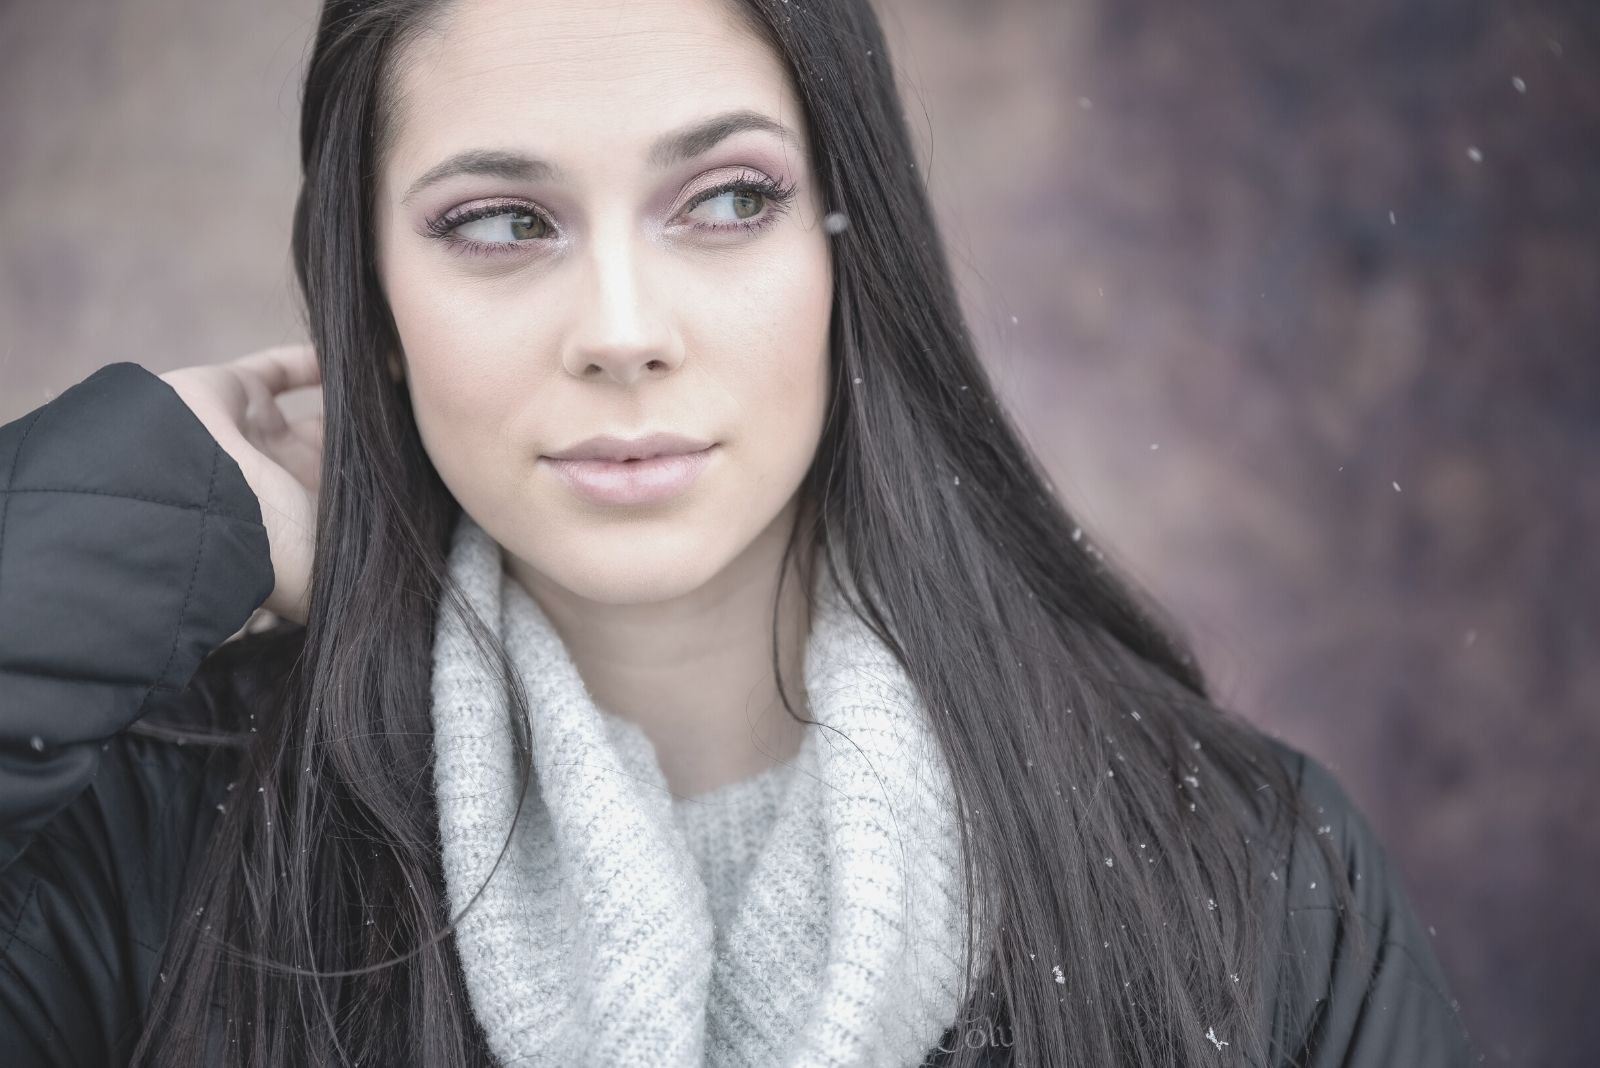 pensive woman with white scarf and black jacket looking at the side facing the camera